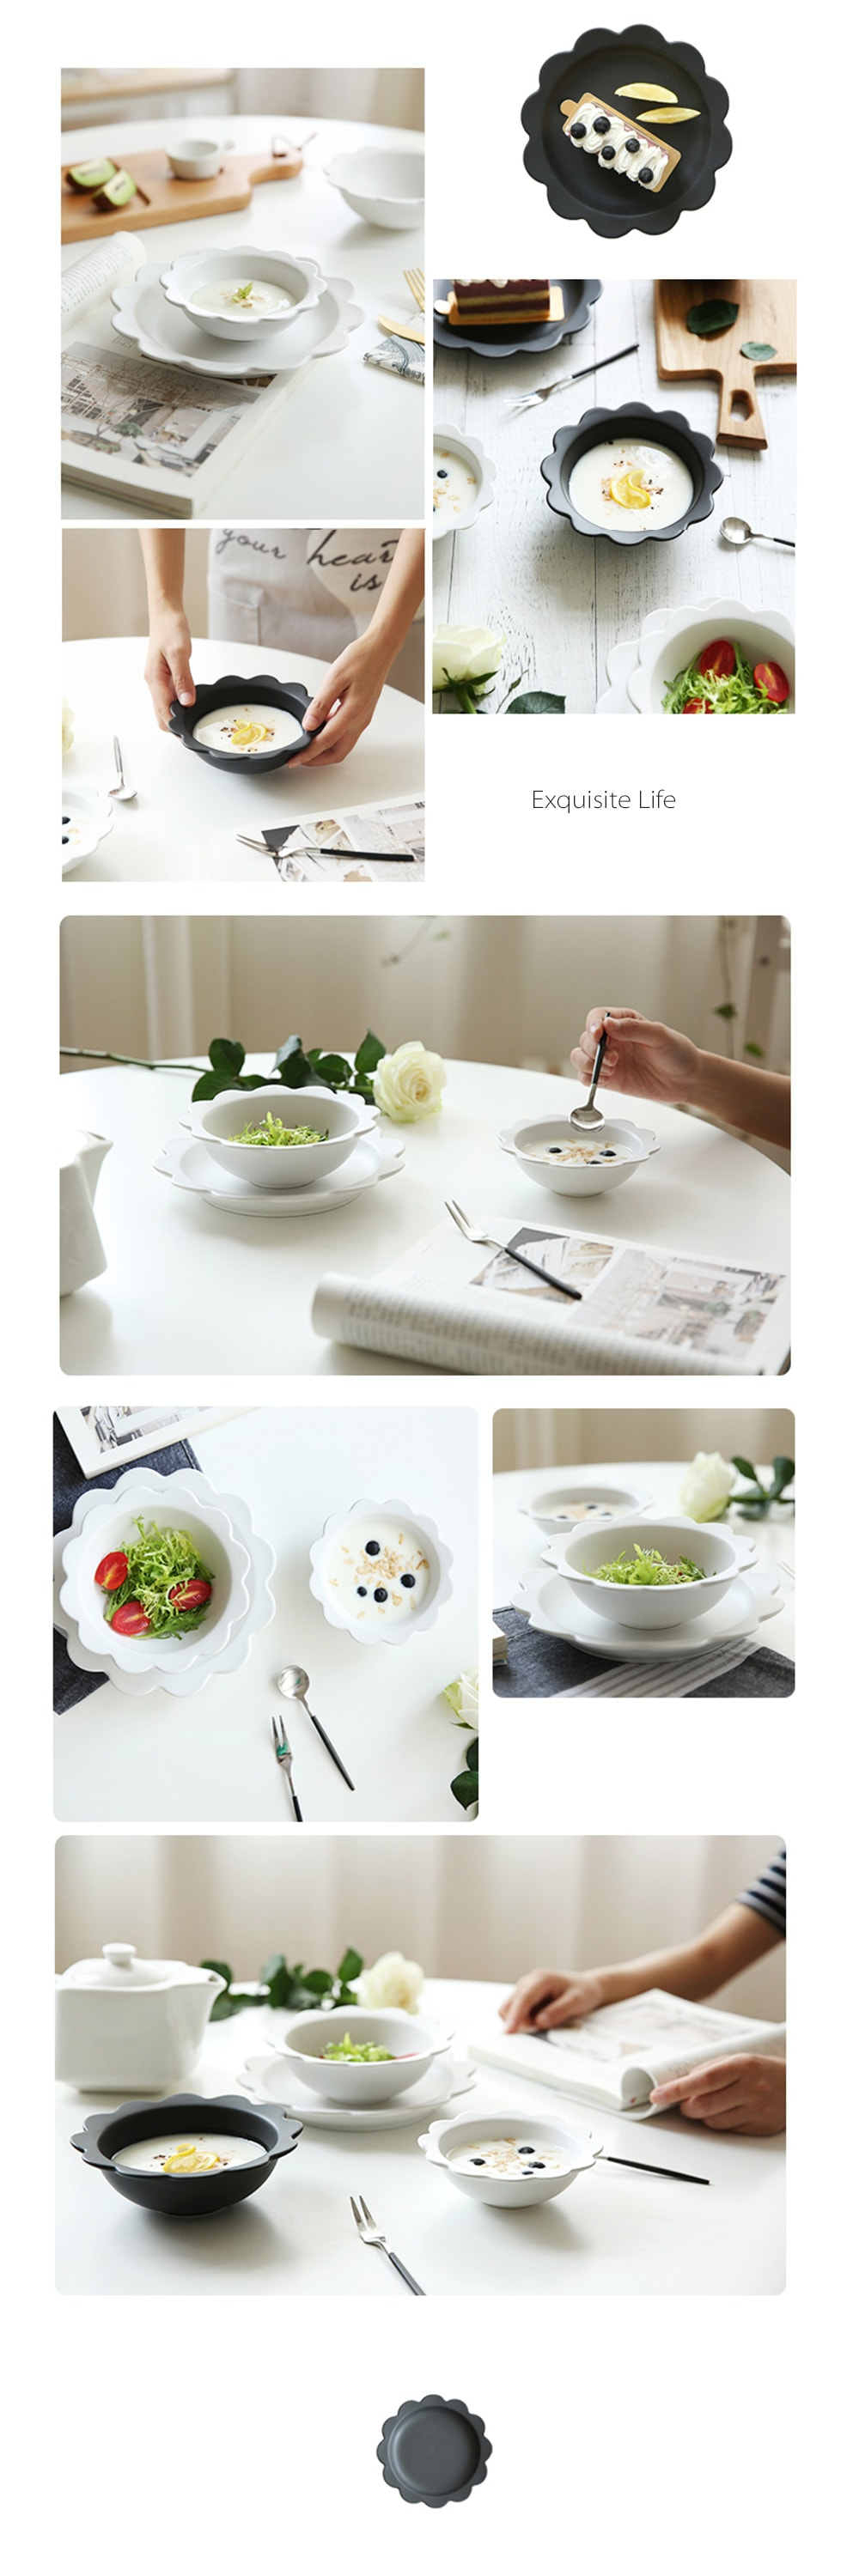 Ceramic Flower Bowl & Plate Set For Your Sweet Home